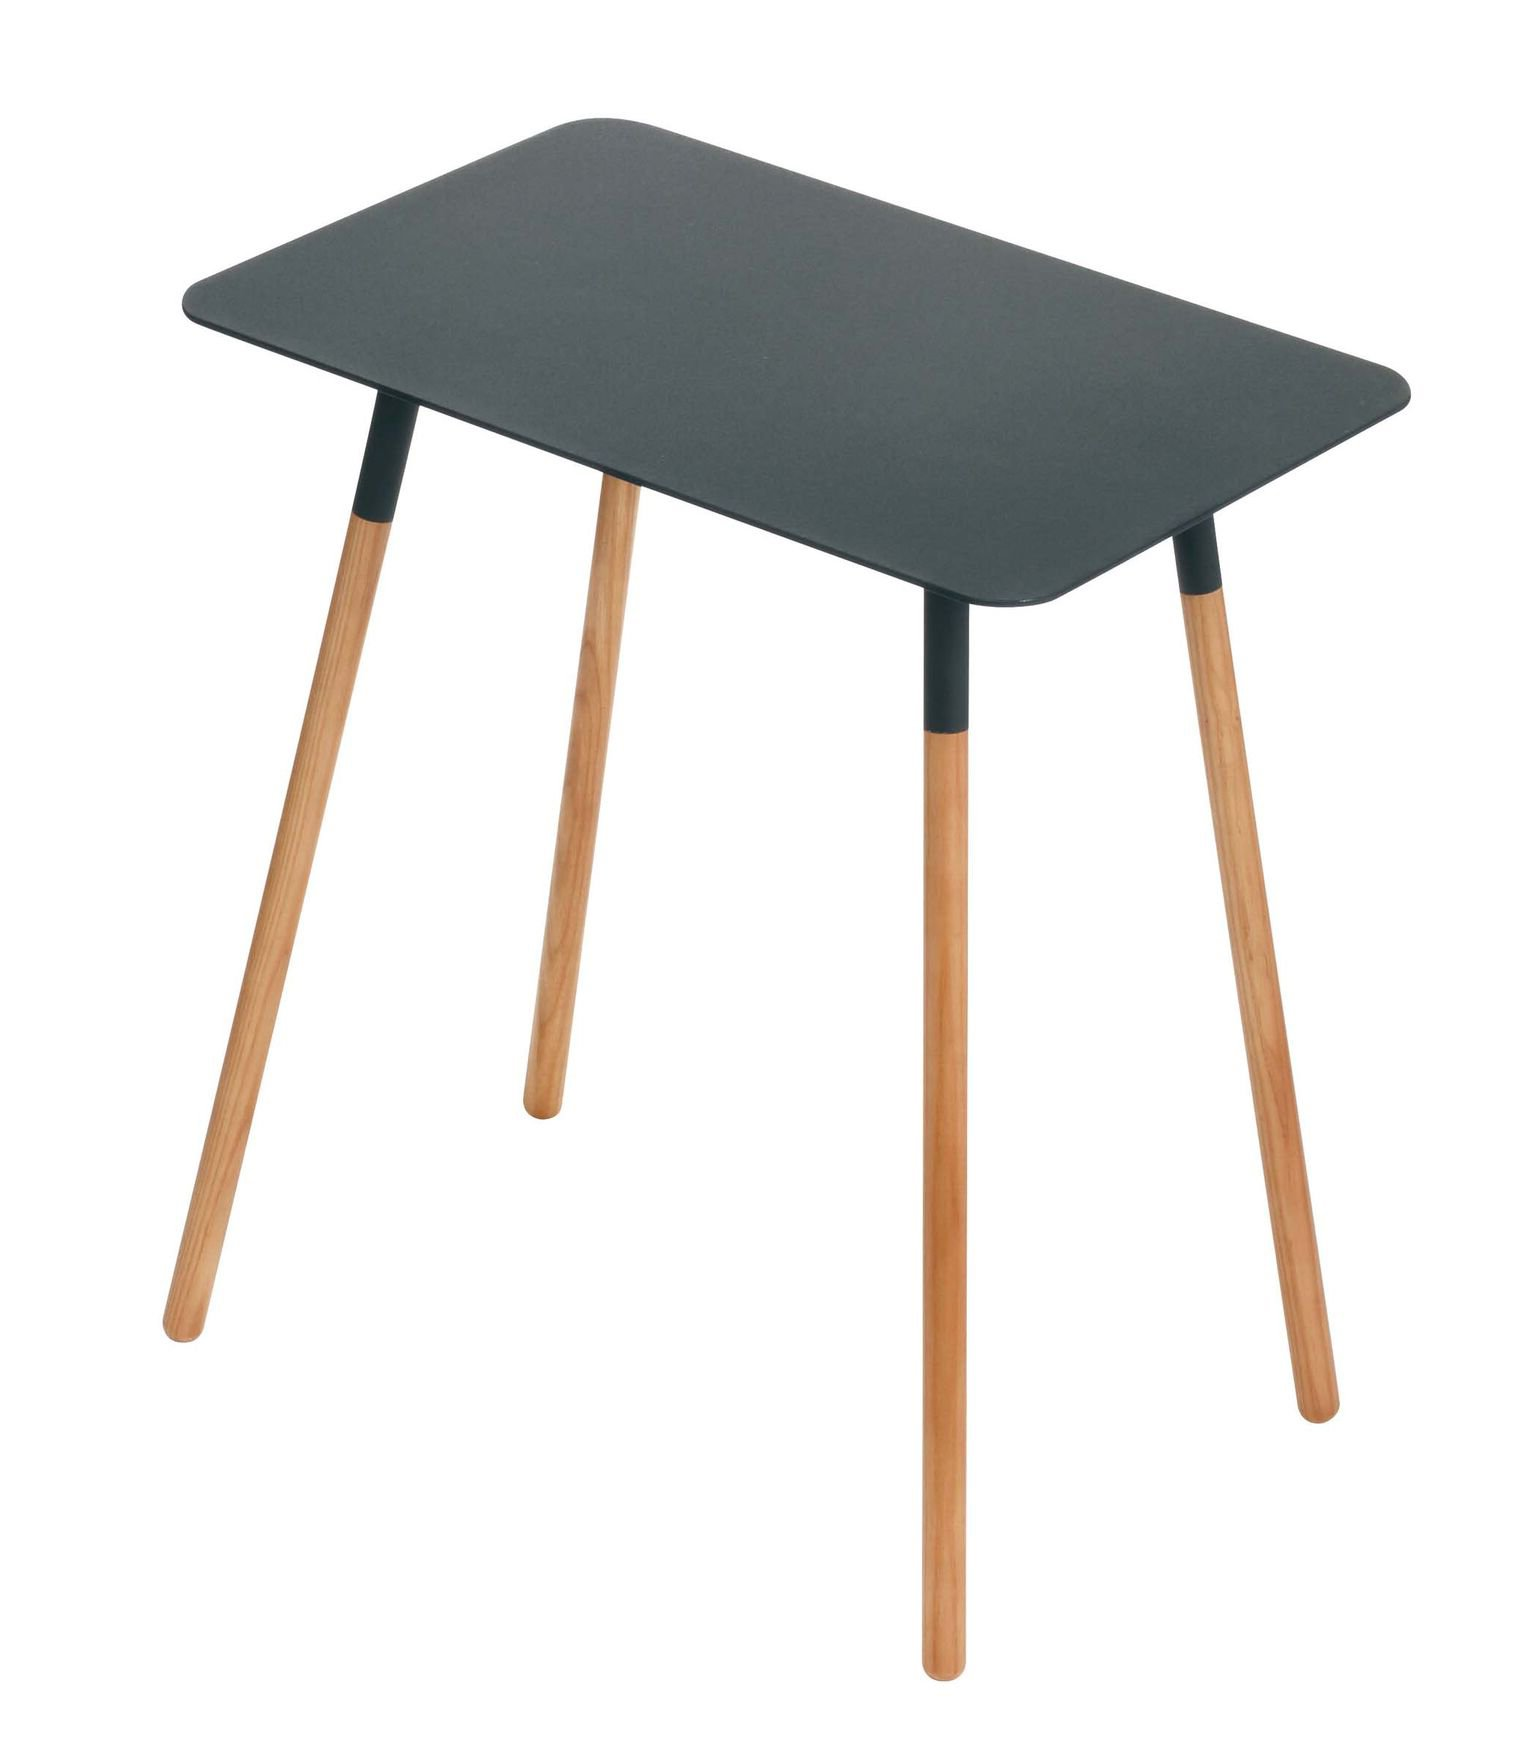 Red Co. Mid-Century Modern Minimalistic Rectangular Side Table, Wood & Steel, Black Top Finish, 20-inch - This multipurpose side table merges a traditional Japanese minimalism with a mid-century chic style that is sure to leave your guests in awe of its sheer simplistic beauty Ideal for use as an accent table next to your couch, love seat, or lay-z-boy recliner, with ample room to place a lamp, adorn with some books or other décor items, works as well for setting down your coffee mug, drinks or other glassware A space saving and compact size with a simple design makes it lightweight and easy to move around, so elegant it fits in anywhere as an end table, nightstand, sofa and console table, entryway table, or bedside table - living-room-furniture, living-room, end-tables - 61Gy3A8NSDL -